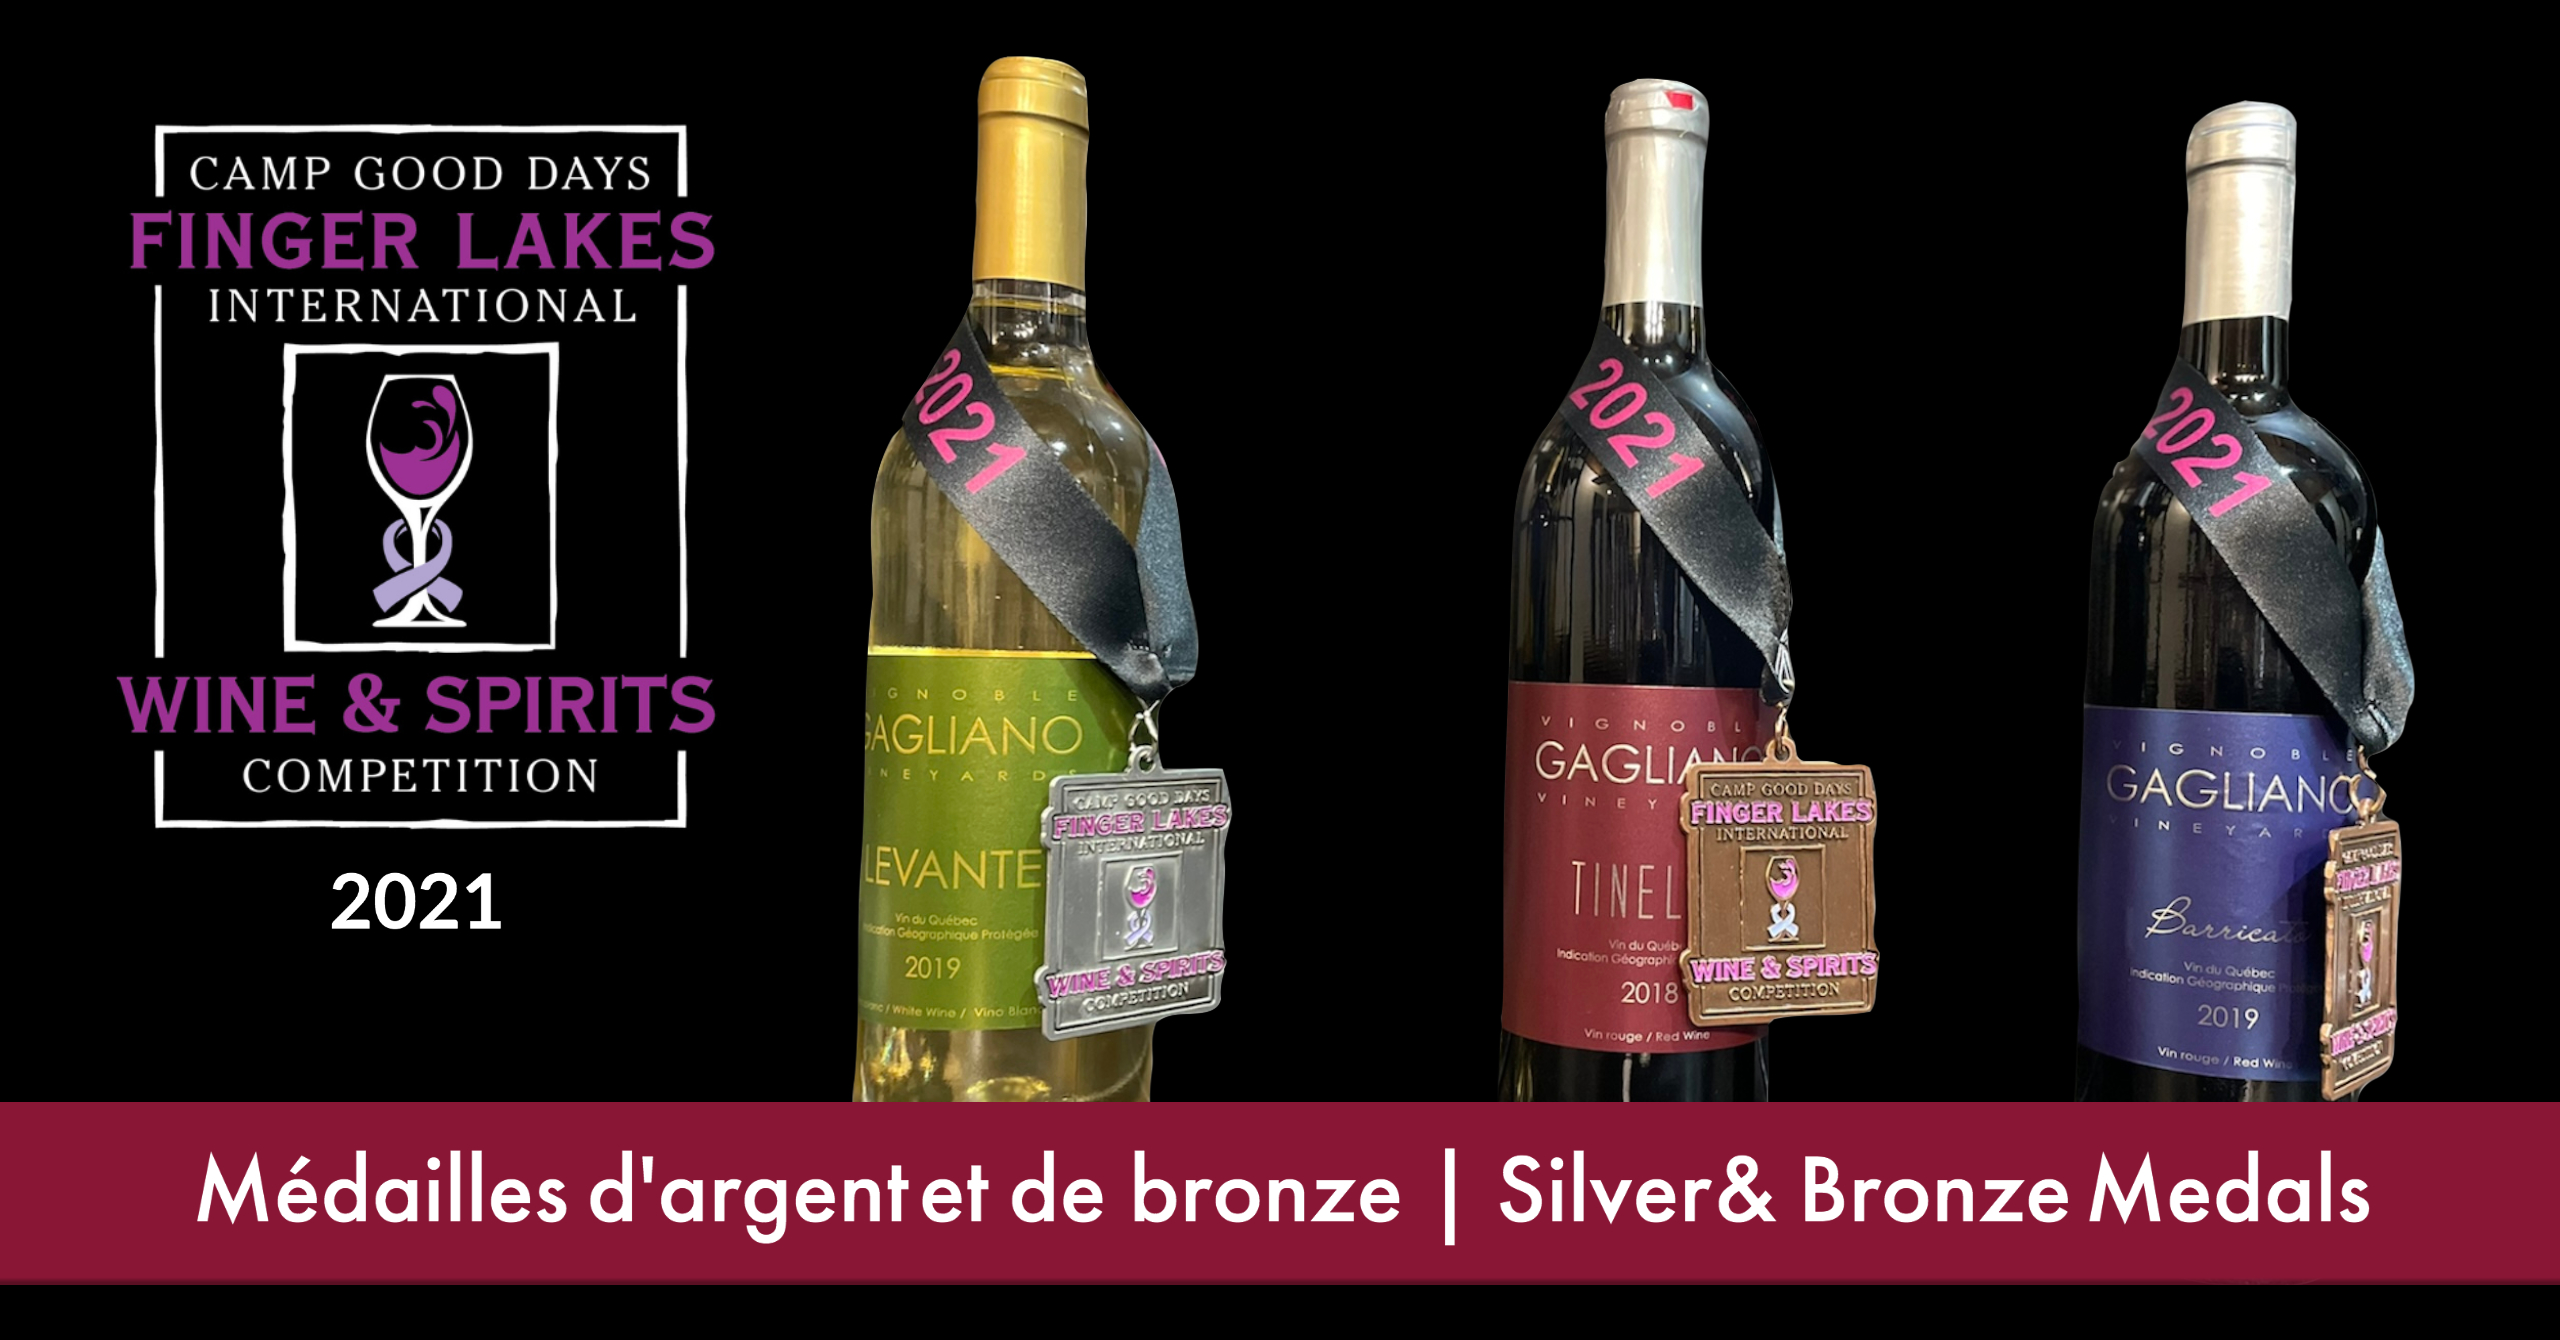 Silver & Bronze Medals at the 2021 Finger Lakes International Wine Competition